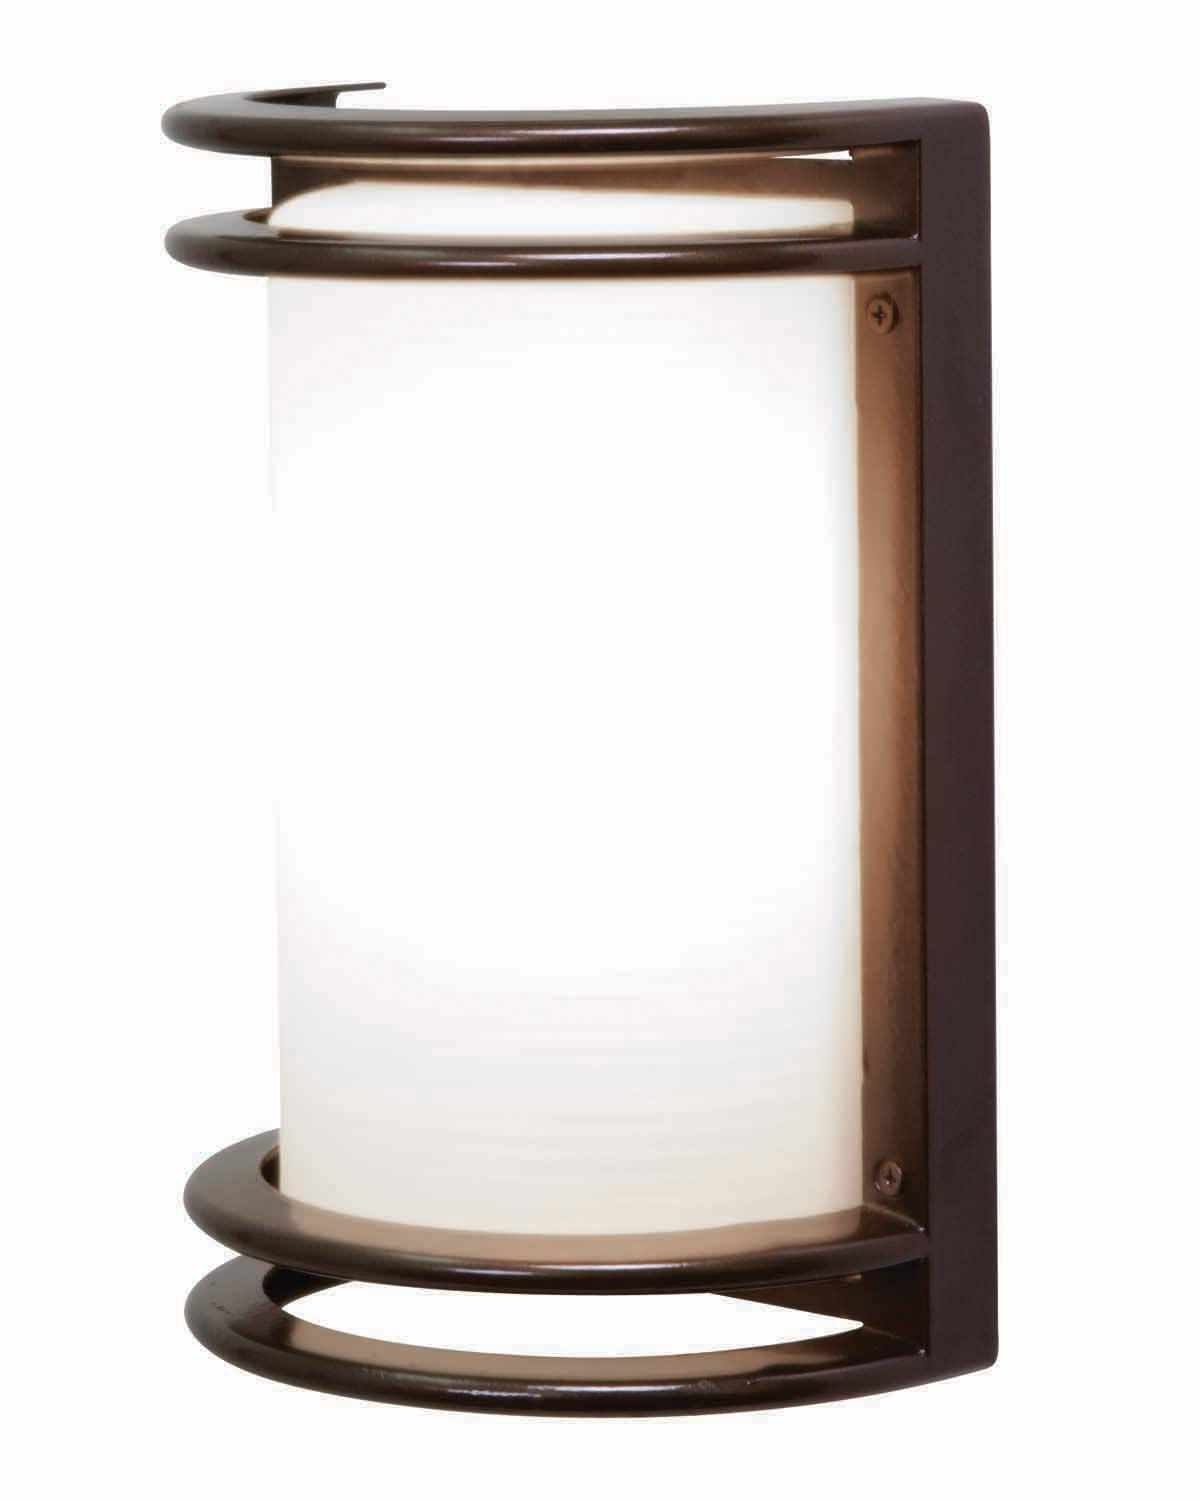 Bronze Zephyr Contemporary Outdoor Wall Sconce — Photo Designs Inside 2018 Residential Outdoor Wall Lighting (View 6 of 20)